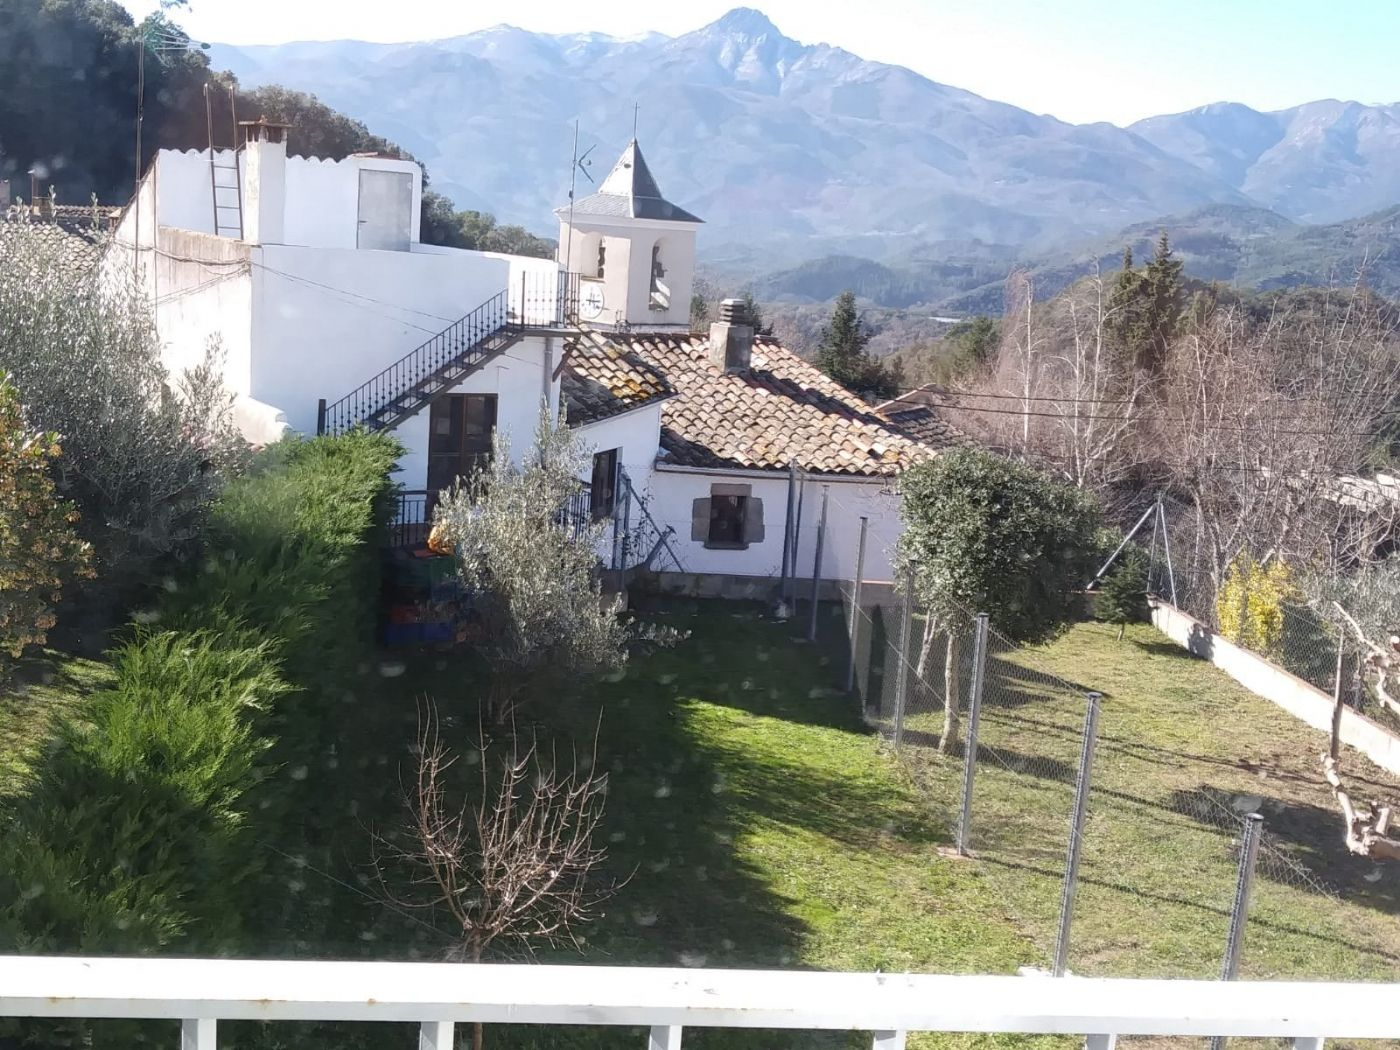 Semi detached house in Carrer mossen pere ribot, 8. Magnificas vistas a las alturas del montseny